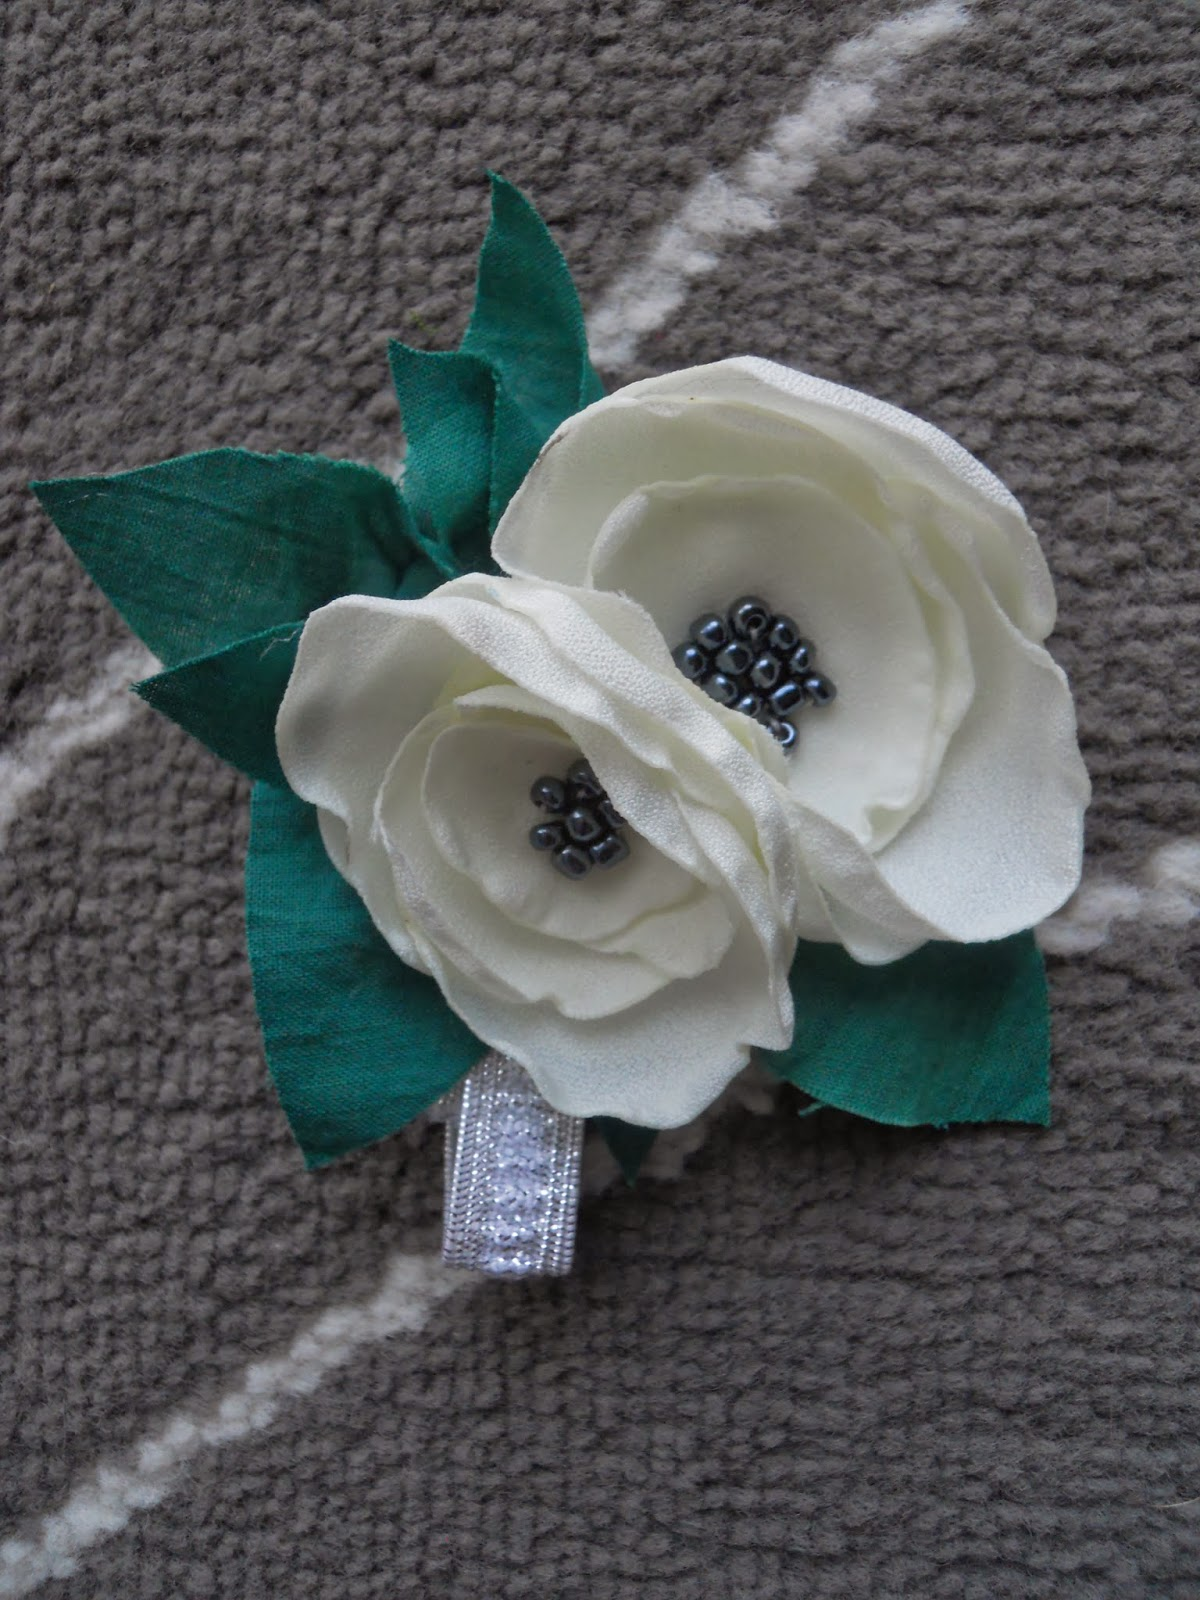 fabric flower wrist corsage